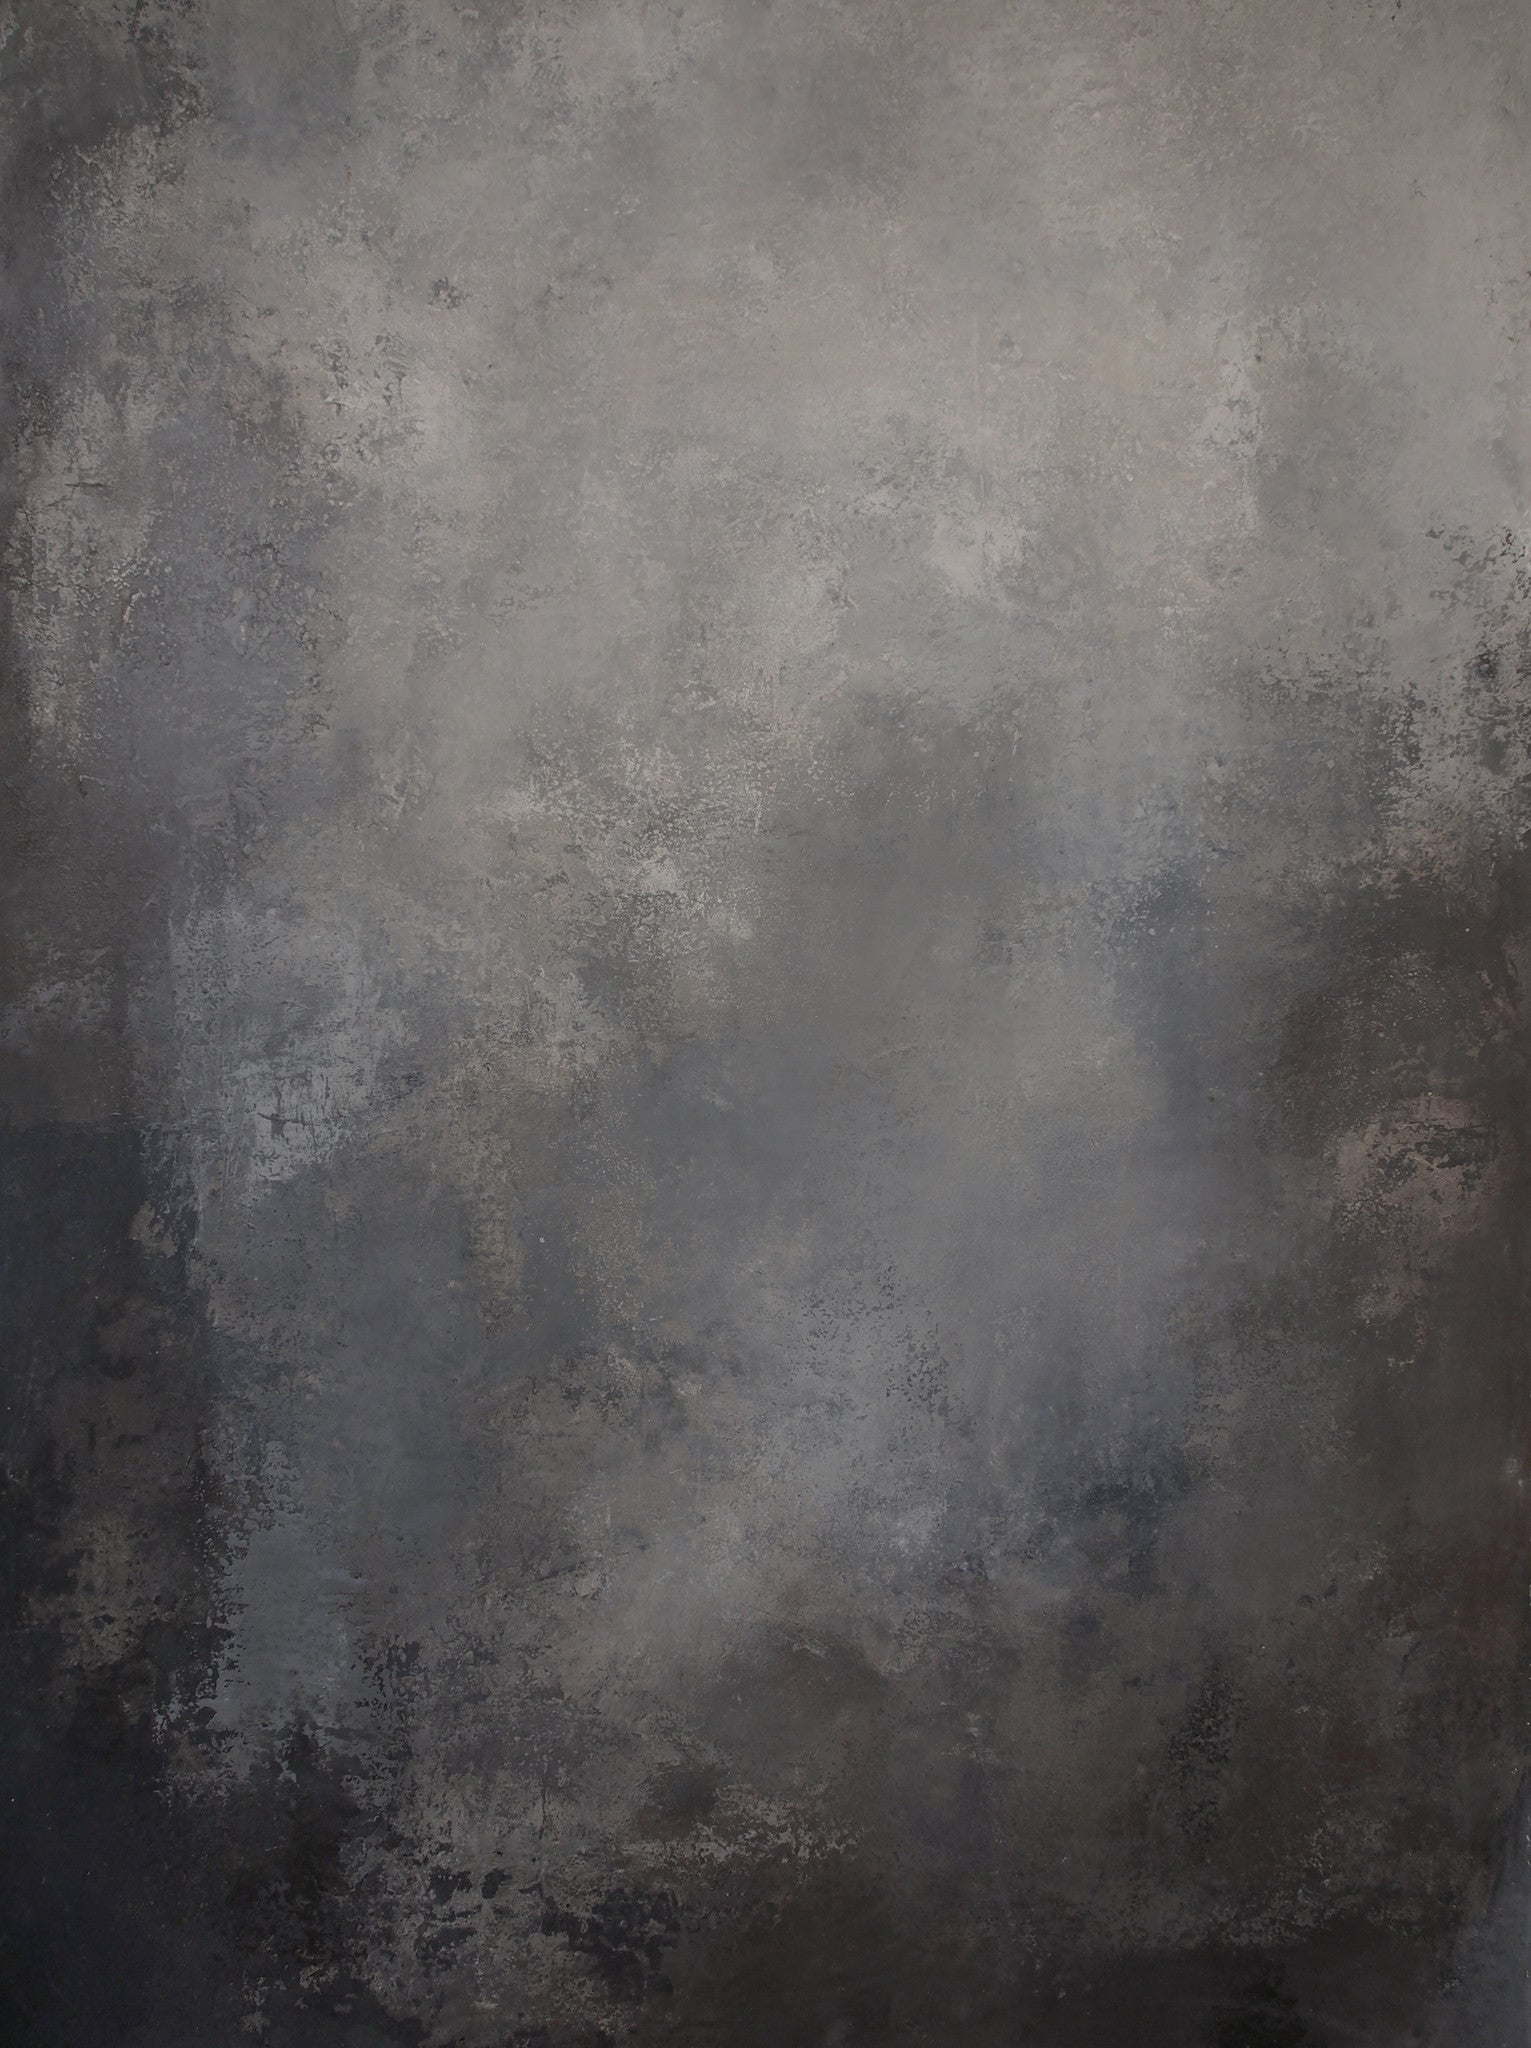 Shades of gray - Poster 80x60